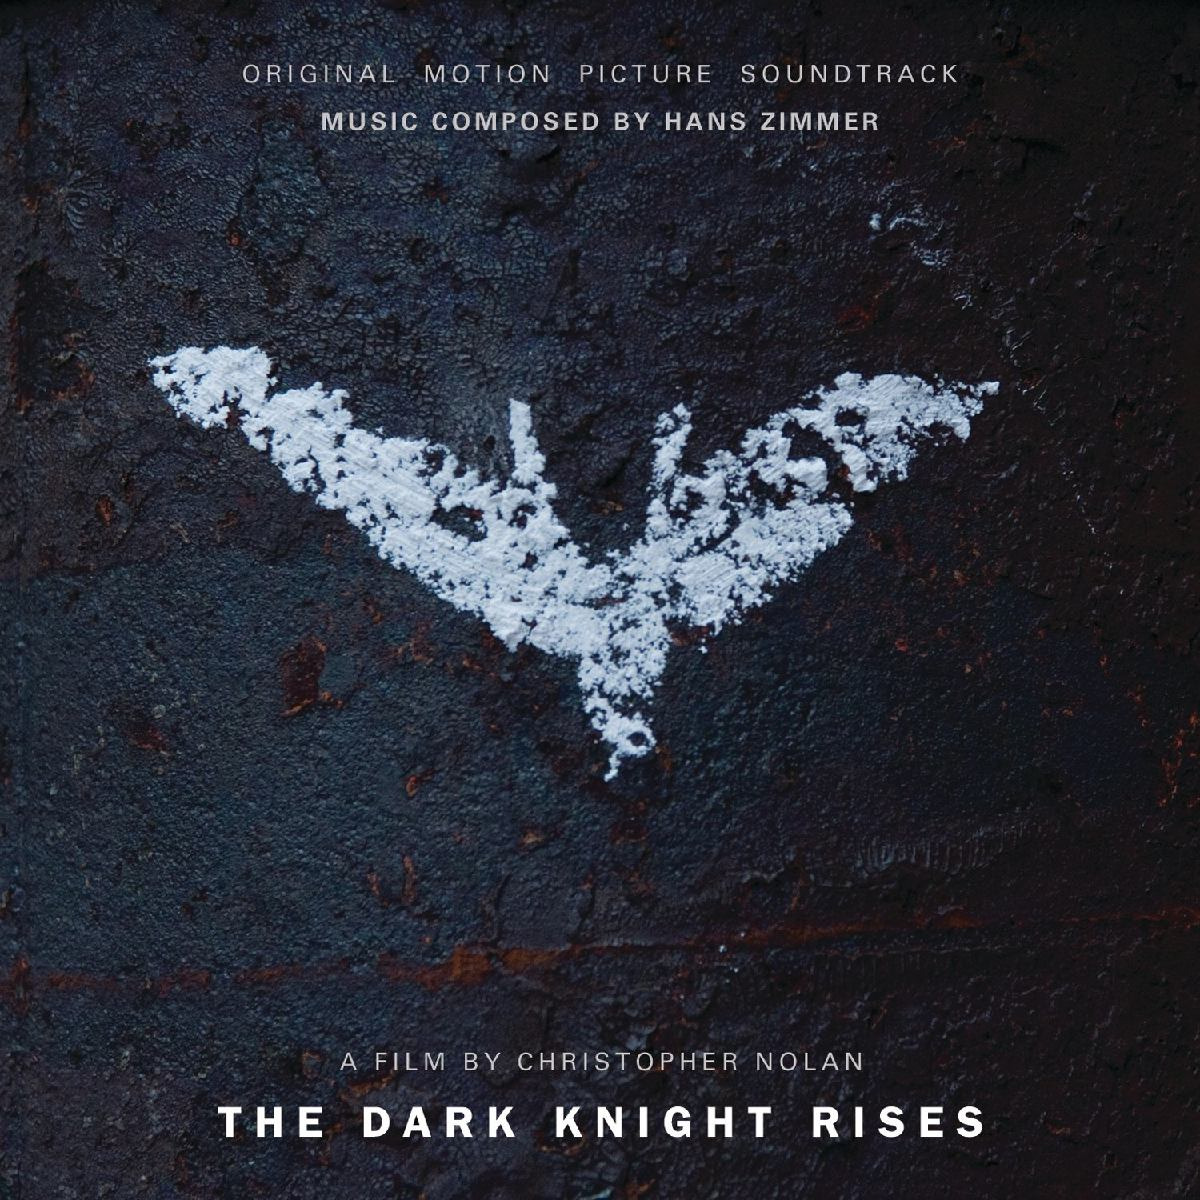 the dark knight rises a review essay Christian bale as batman in christopher nolan's dark knight rises credit ron phillips/warner brothers pictures  after seven years and two films that have pushed batman ever deeper into the .